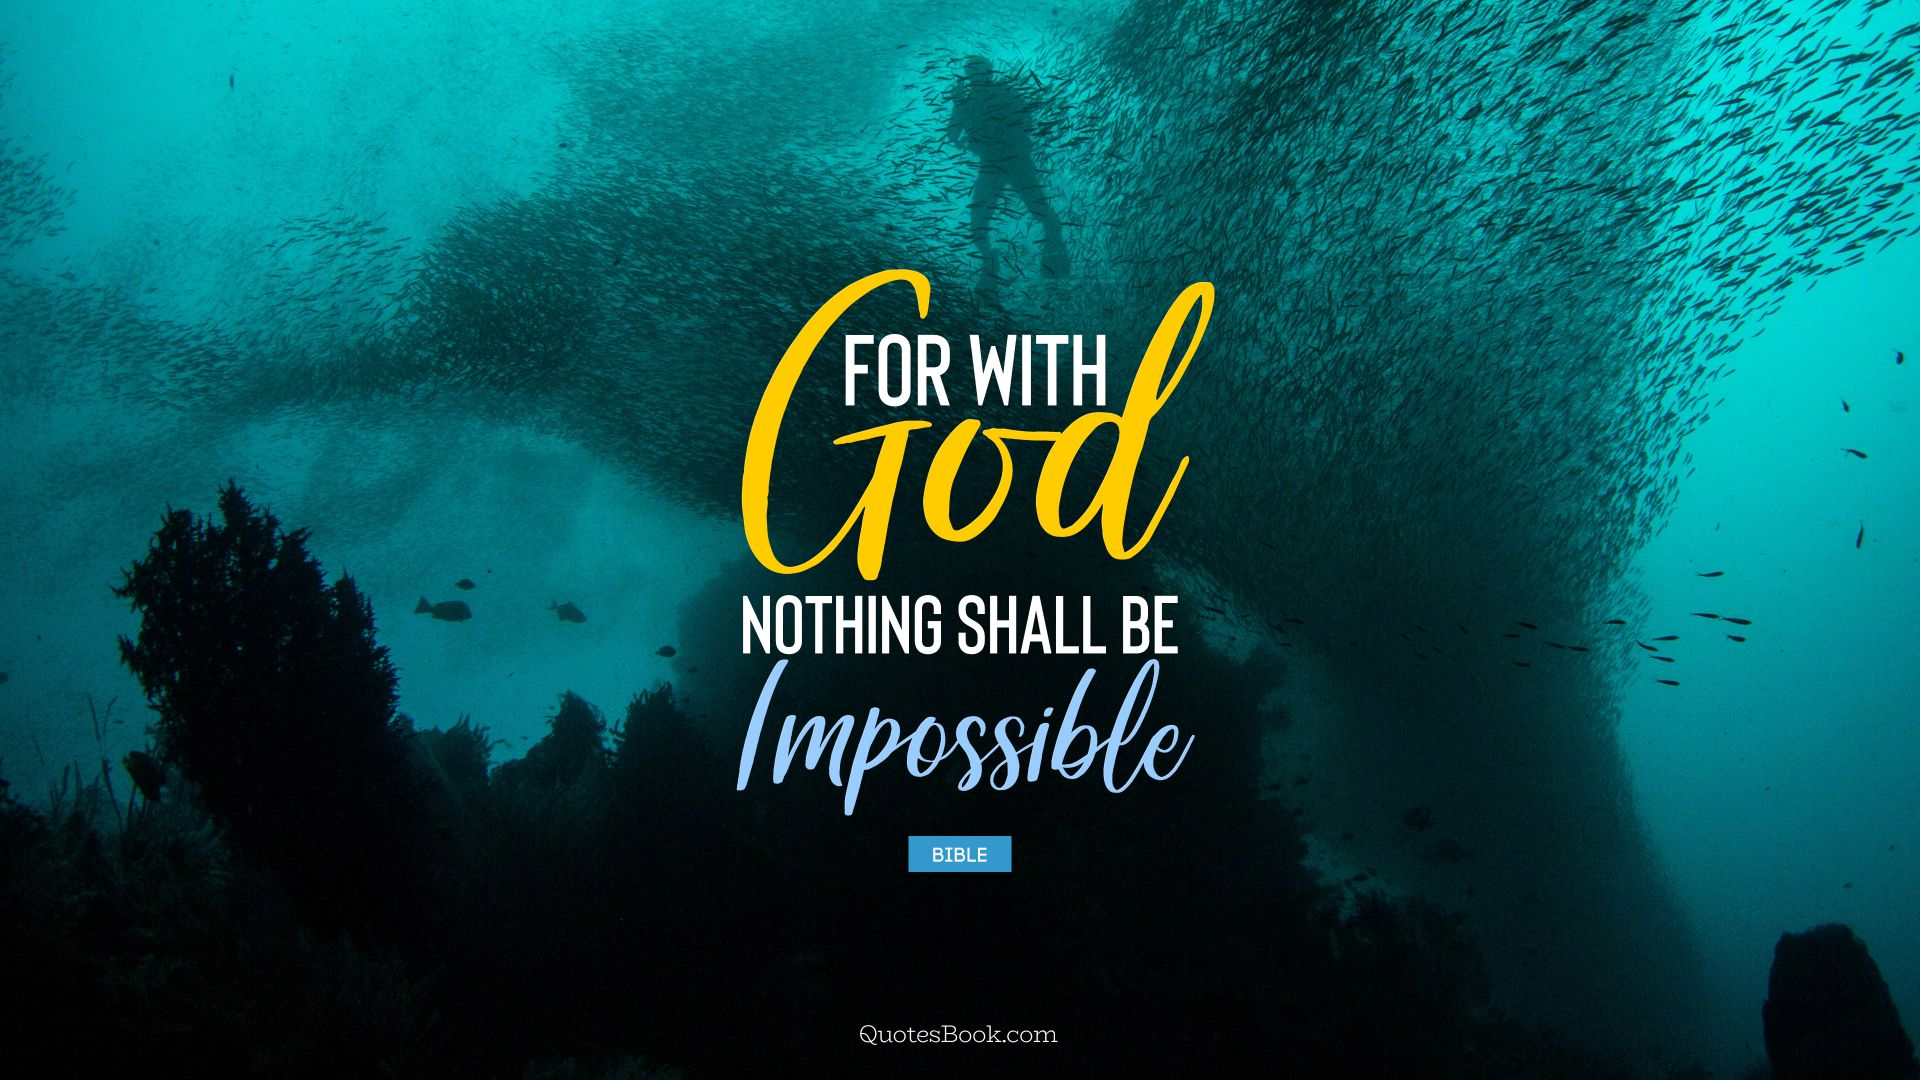 For with God nothing shall be impossible. - Quote by Bible